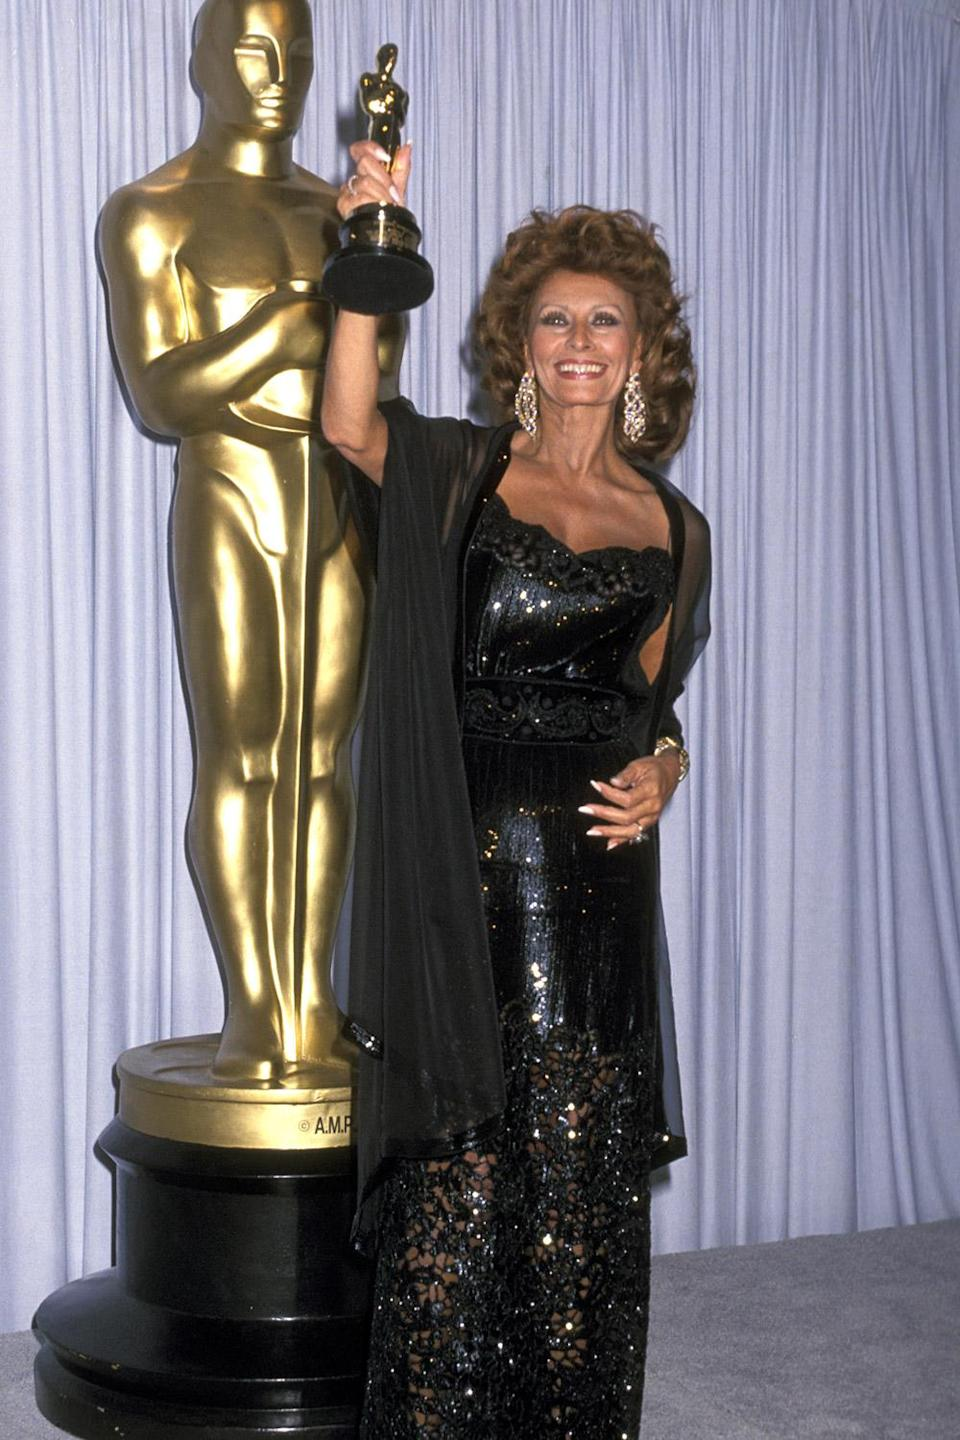 <p>Sophia Loren showed off her honorary award with a smile. </p>